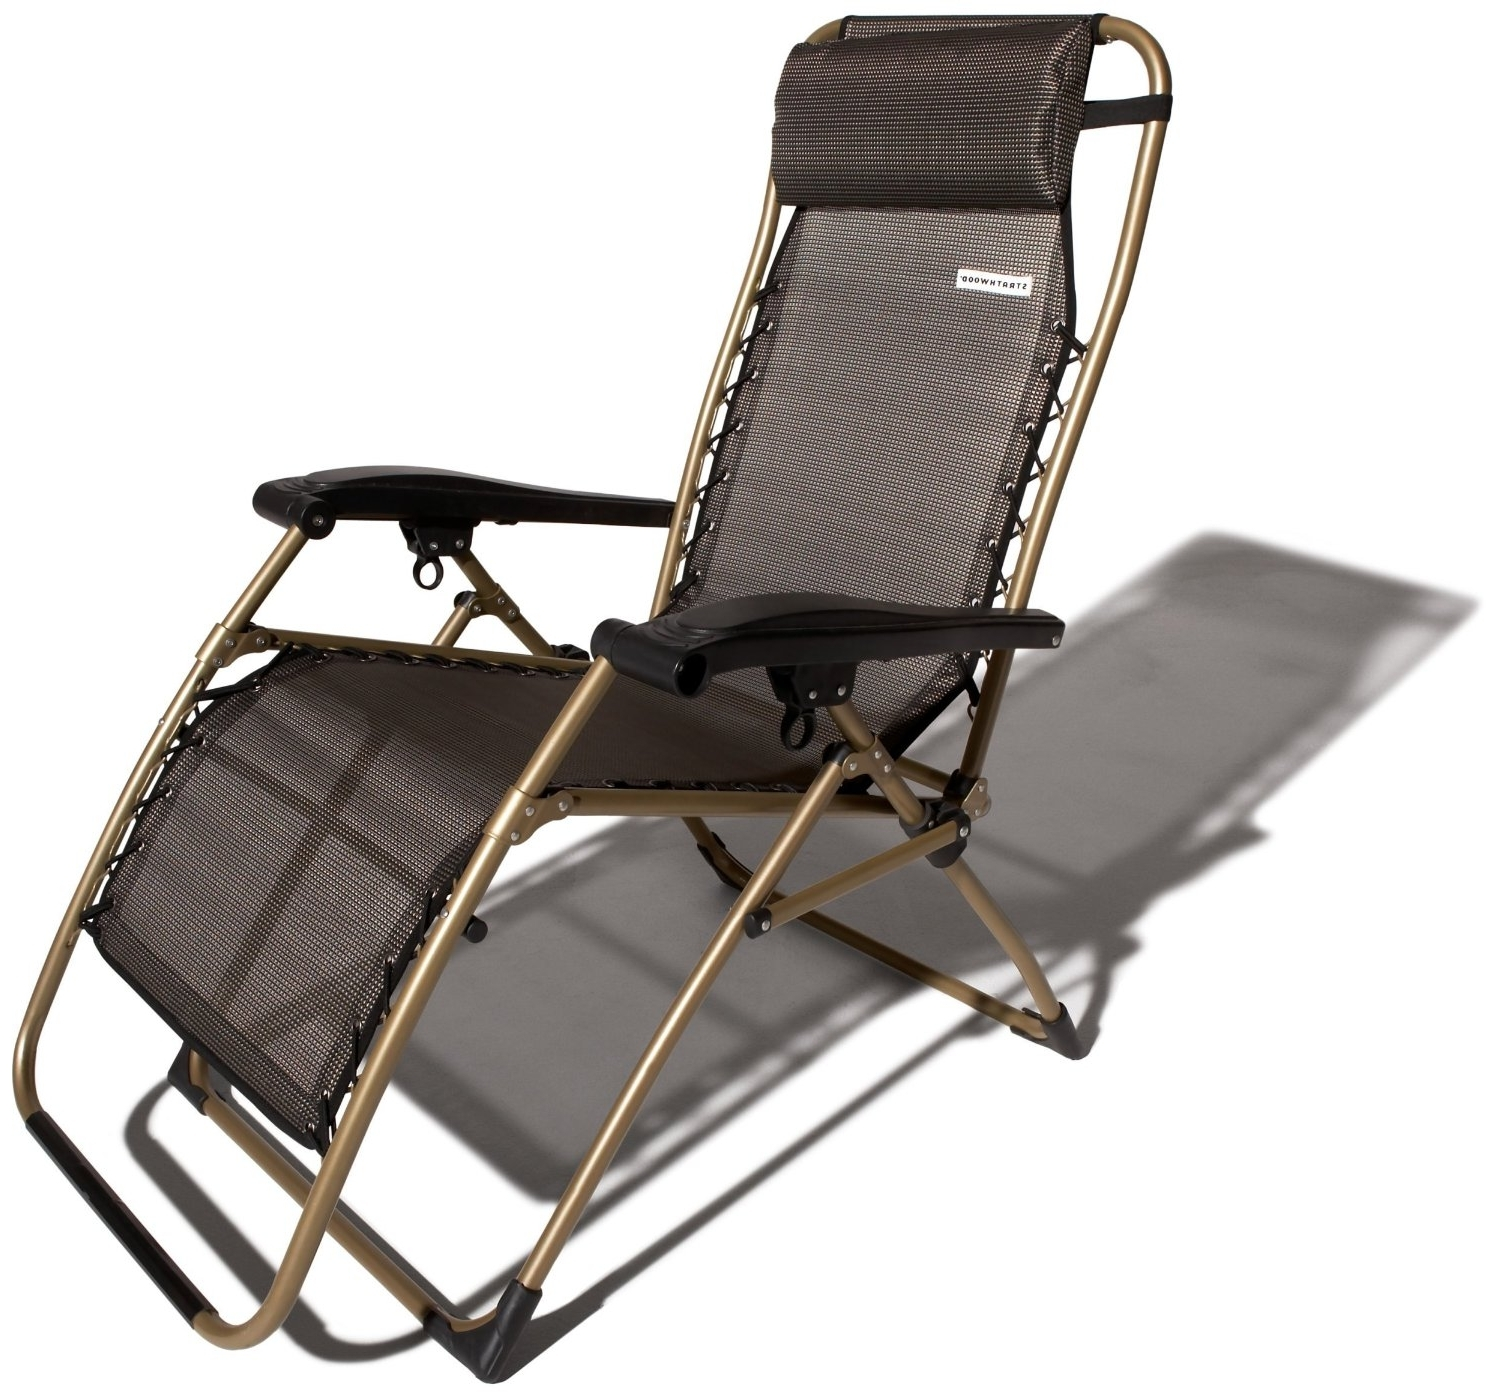 Well Known Adjustable Pool Chaise Lounge Chair Recliners Intended For Elegant Patio Recliner Chair Patio Furniture Chaise Lounge (View 15 of 15)